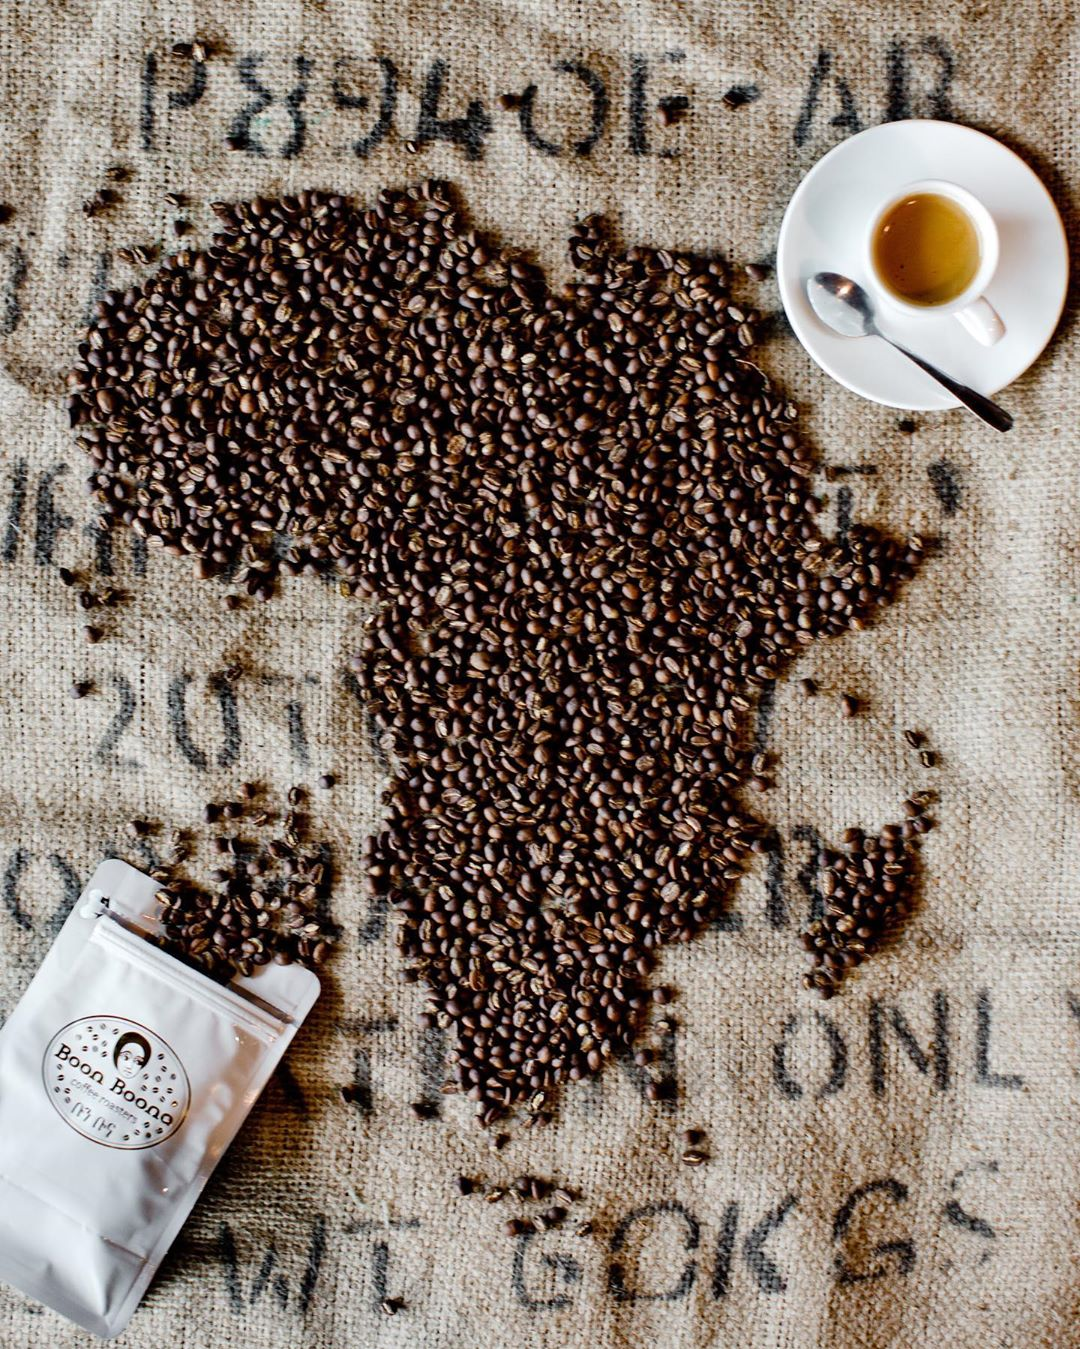 Best Coffee Brands from Ethiopia